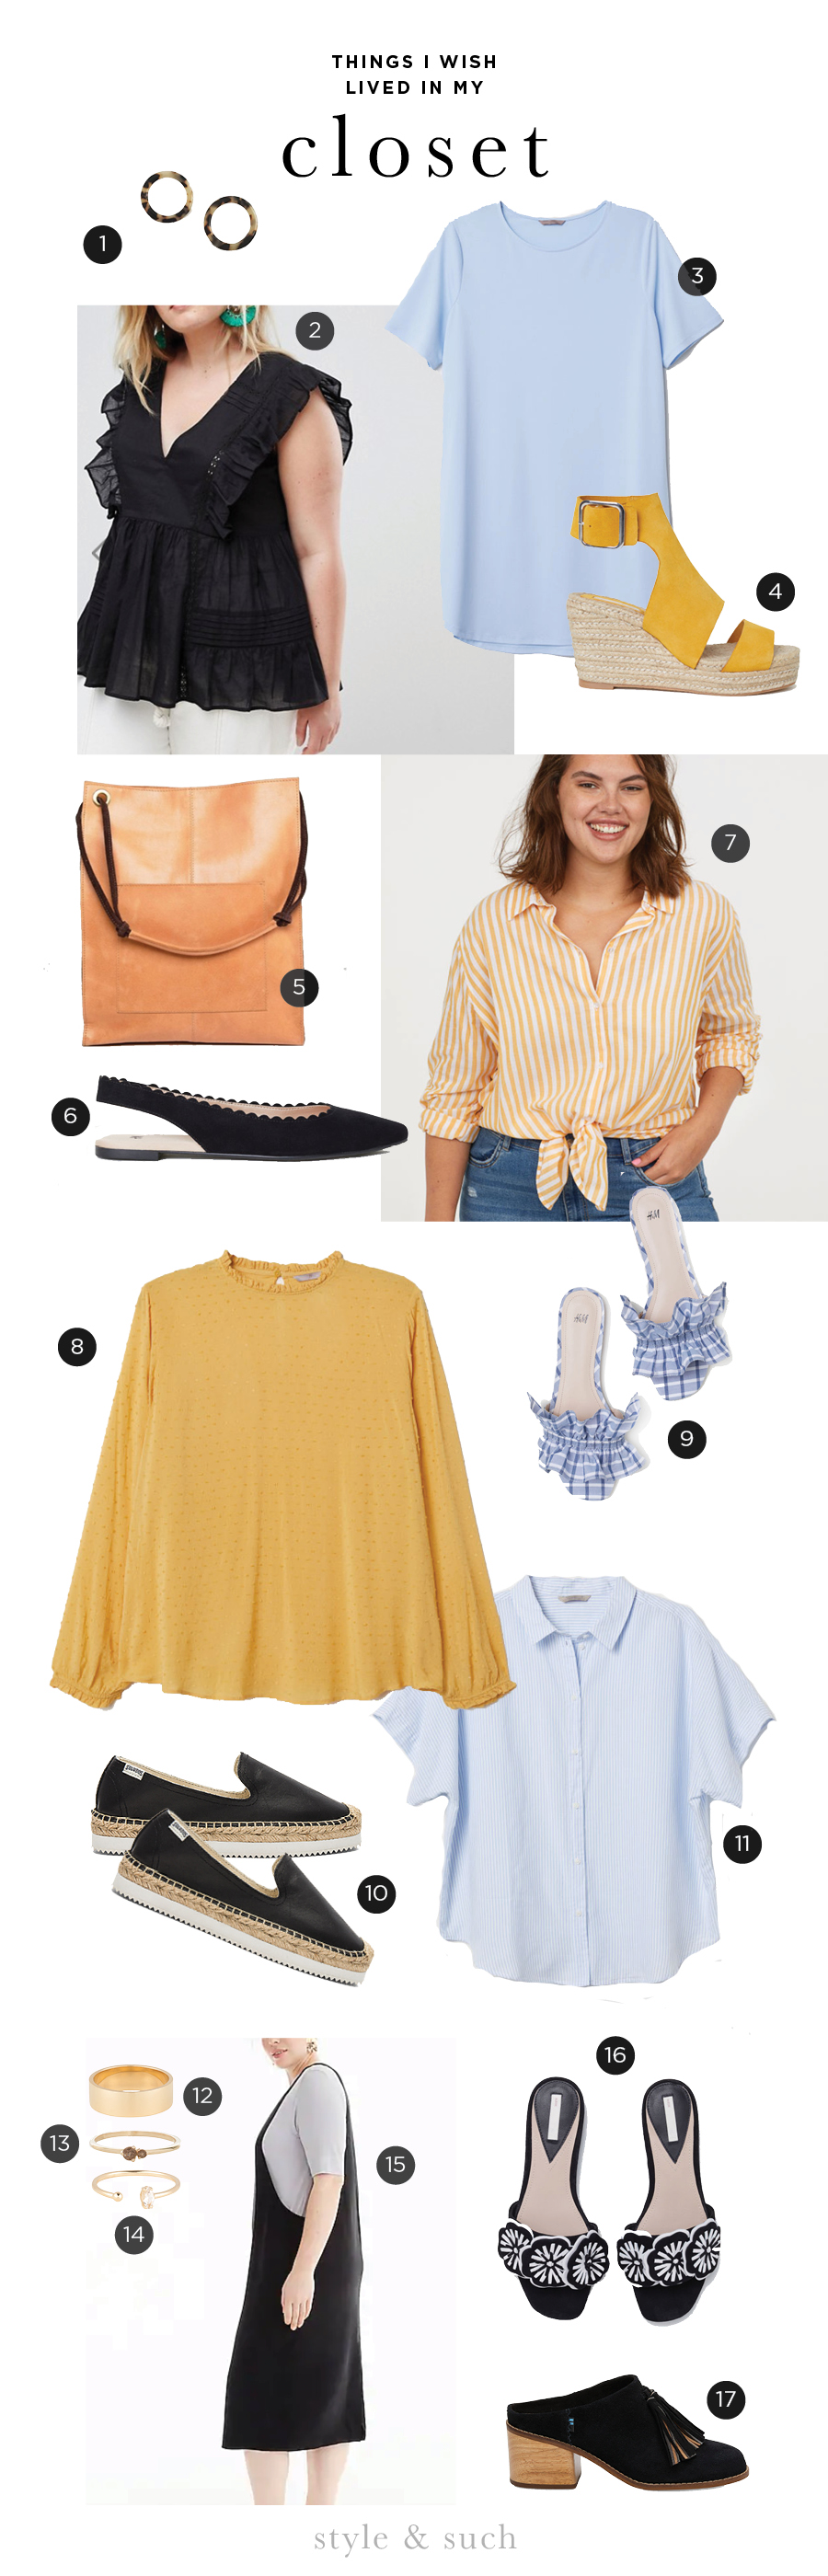 1. Tortoise Shell Hoops    |    2. Flutter Longline Top    |    3. Short Sleeve Tunic    |    4. Wedge Heel Sandals    |    5. Leather Vintage Shopper    |    6. Scallop Edge Ballet Flats    |    7. Cotton Striped Shirt    |    8. Plumeti Blouse    |    9. Plaid Mules    |    10. Smoking Slipper    |    11. Cotton Collared Shirt    |    12. Boyfriend Stacker Ring    |    13. Hue Ring in Smokey Quartz    | 1   4. Marquis Open Ring    |    15. Layering Tank Dress    |    16. Suede Mules    |    17. Suede Leila Mules